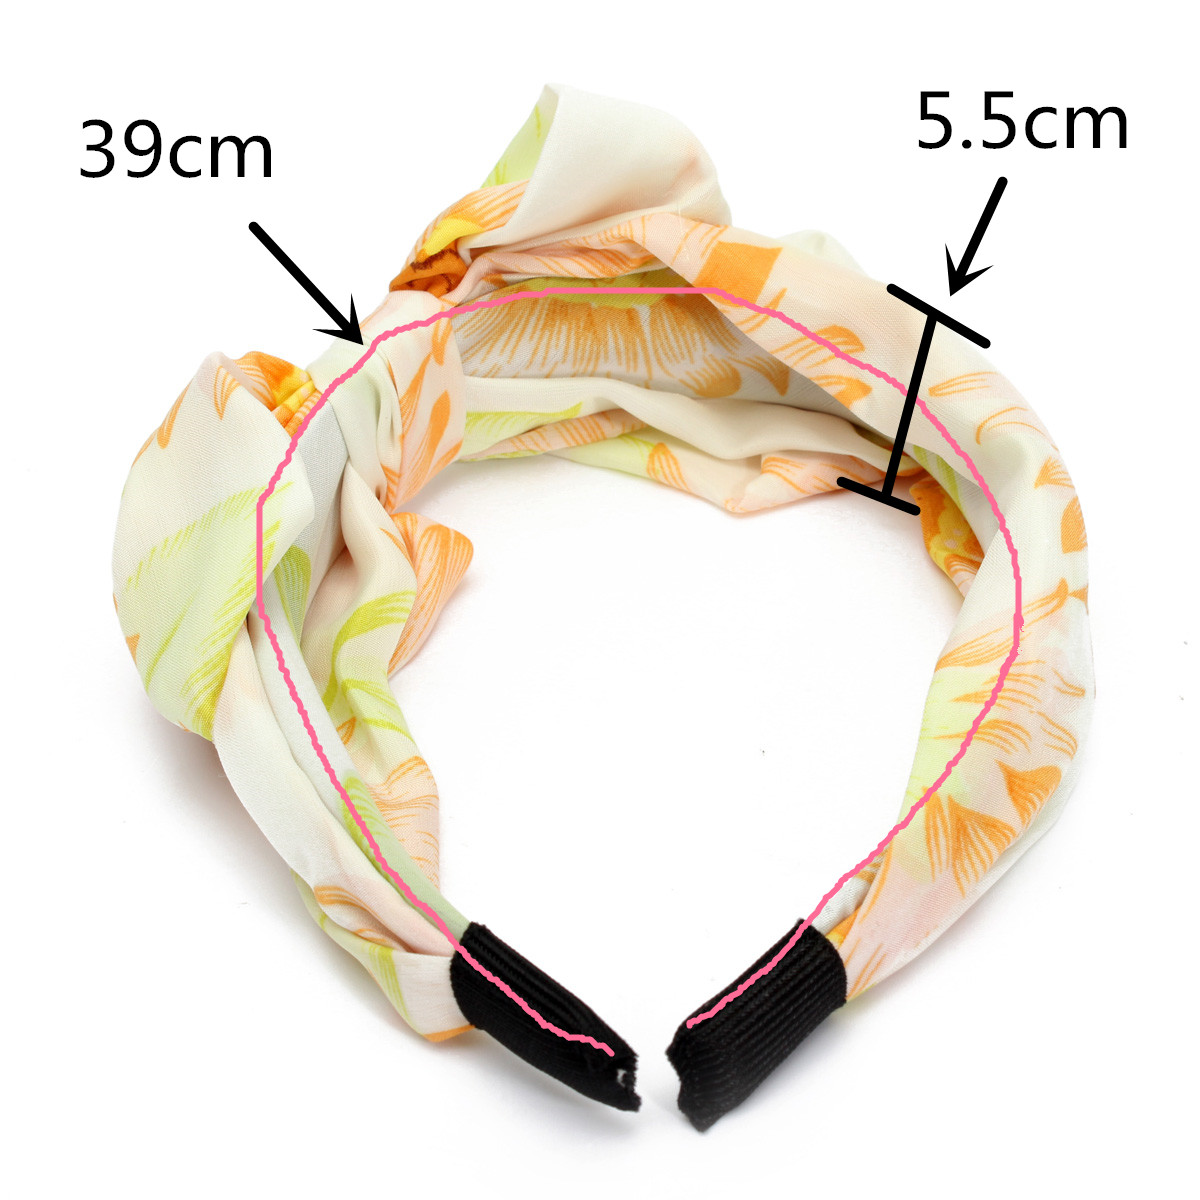 Chiffon Blends Girls Lady Bowknot Headbrand Hairdressing Hair Accessories